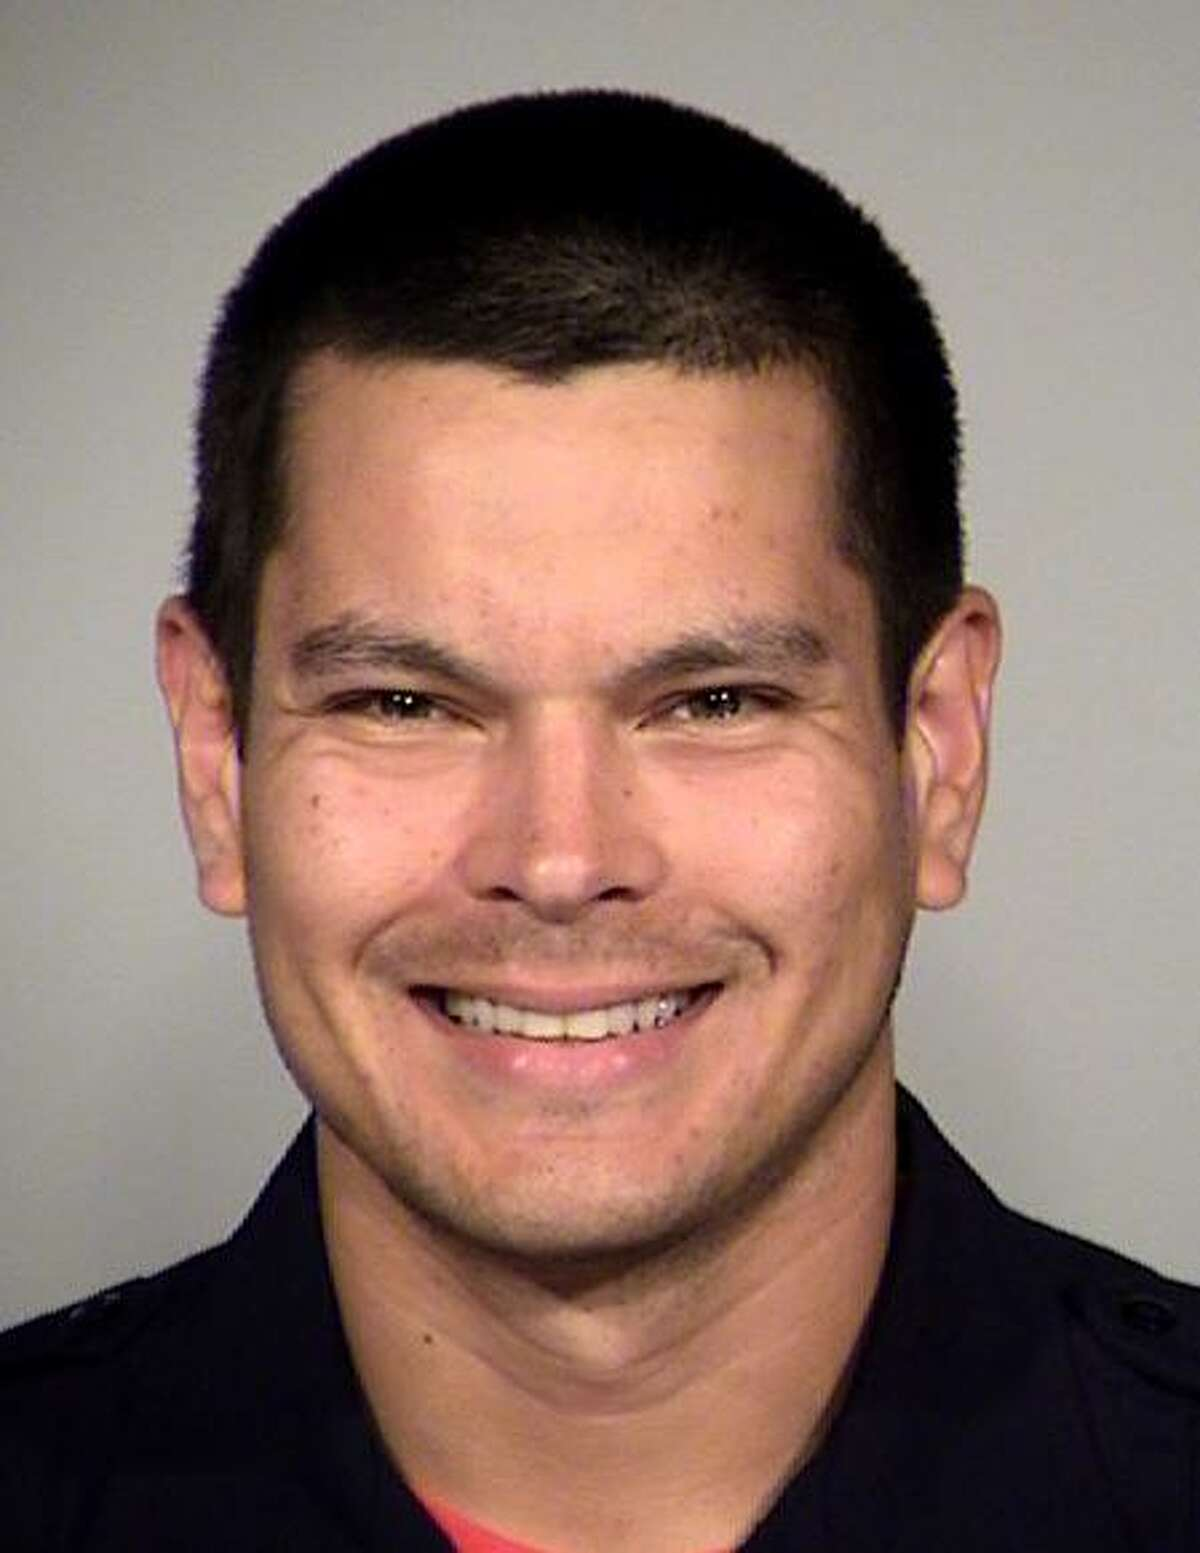 Officer Matthew Luckhurst, accused of feeding a human fecal sandwich to a homeless individual in San Antonio.